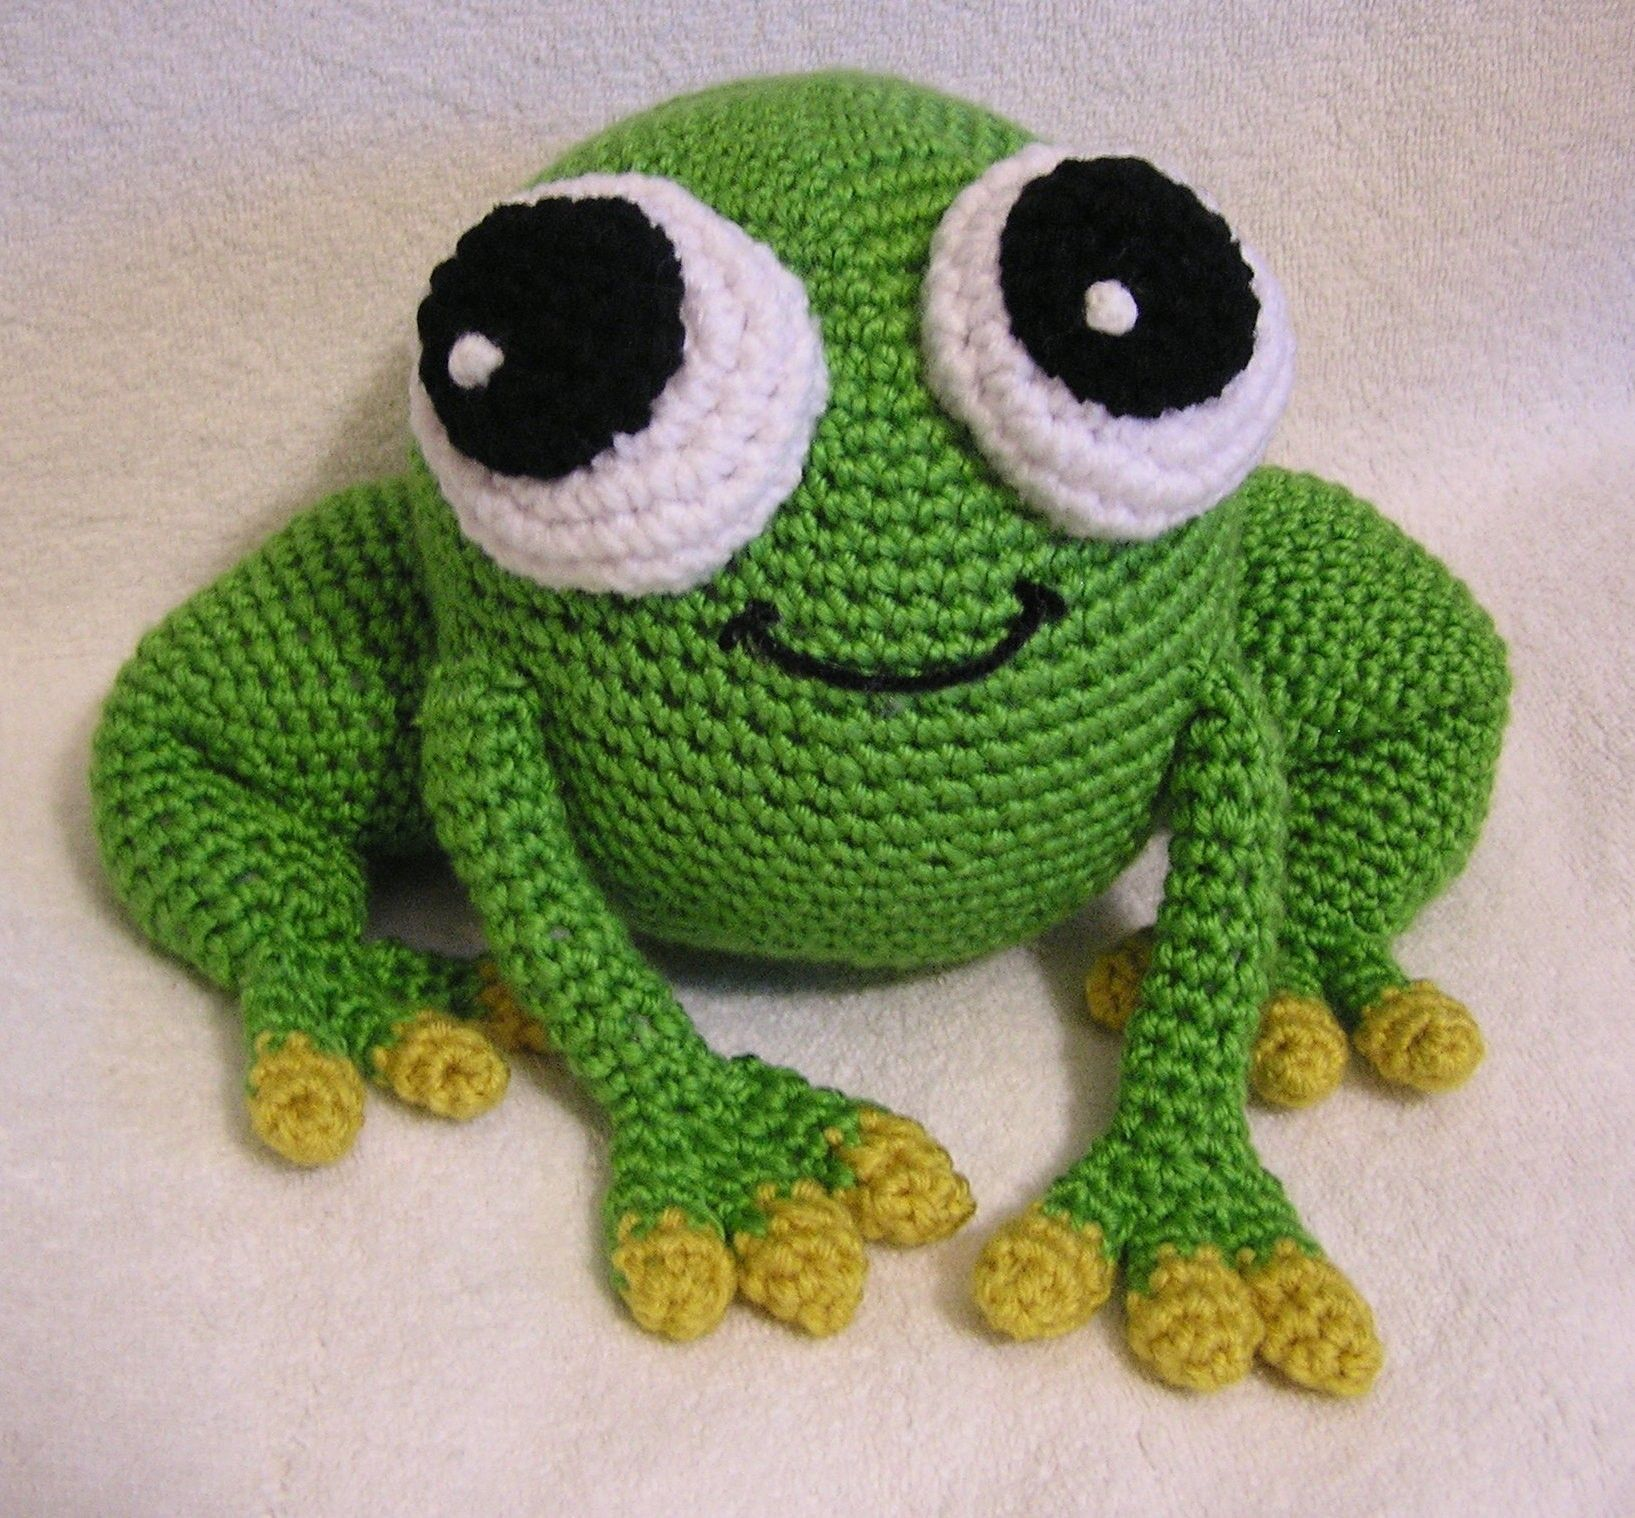 Frances the adorable frog free pattern crazy cool crochet love crochet frog pattern plus other crochet animals free patterns bankloansurffo Image collections